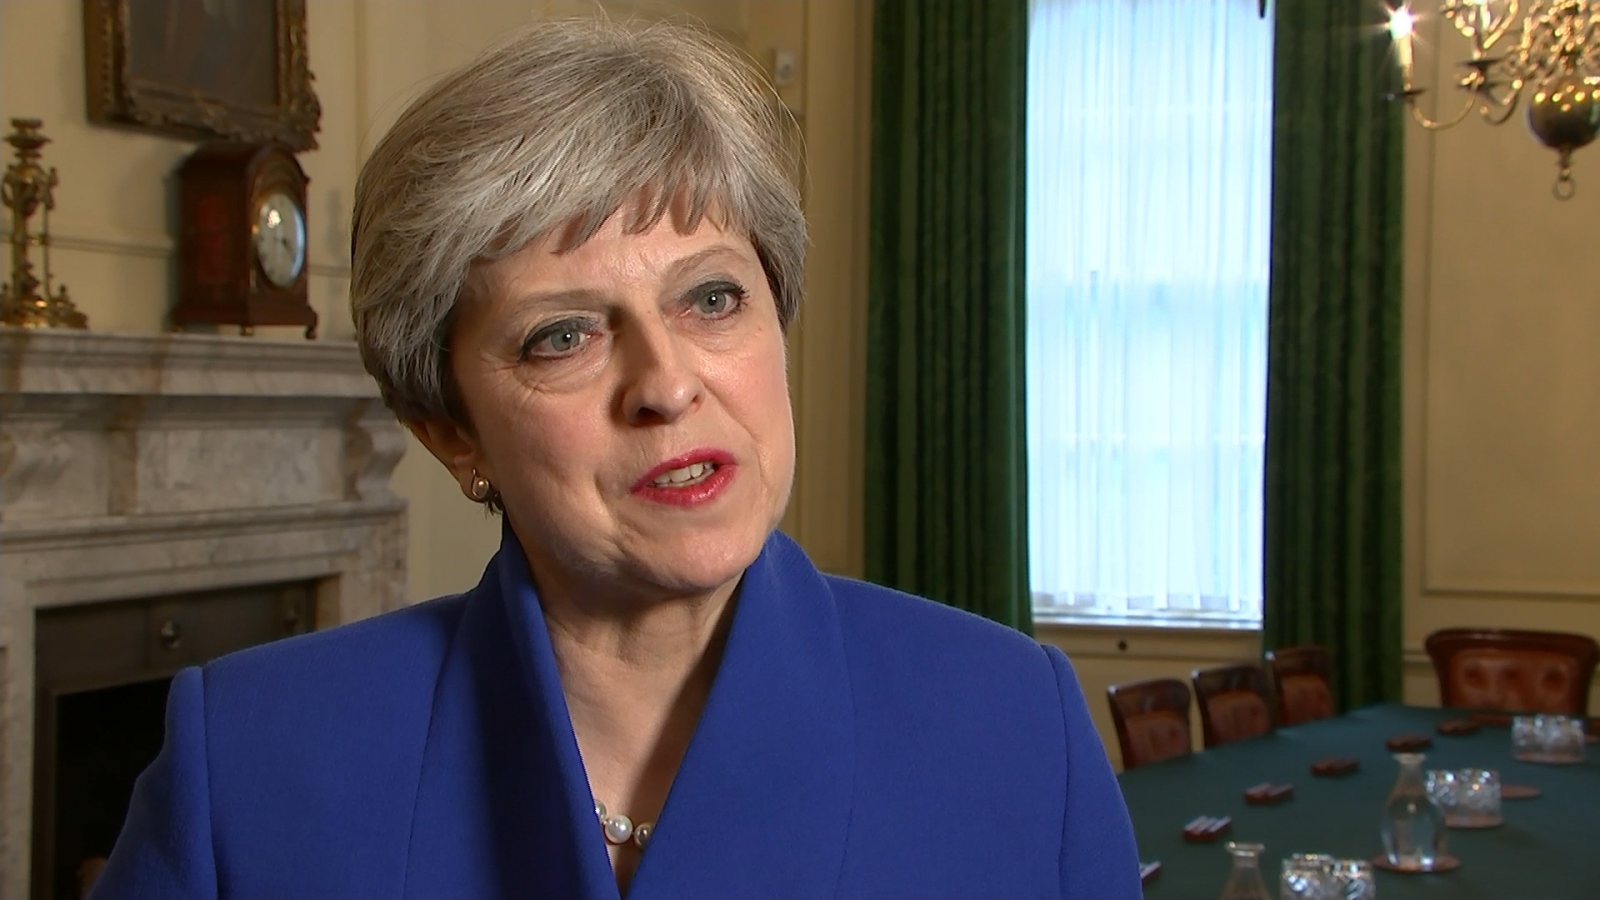 may-says-sorry-to-mps-who-lost-seats-after-election-debacle